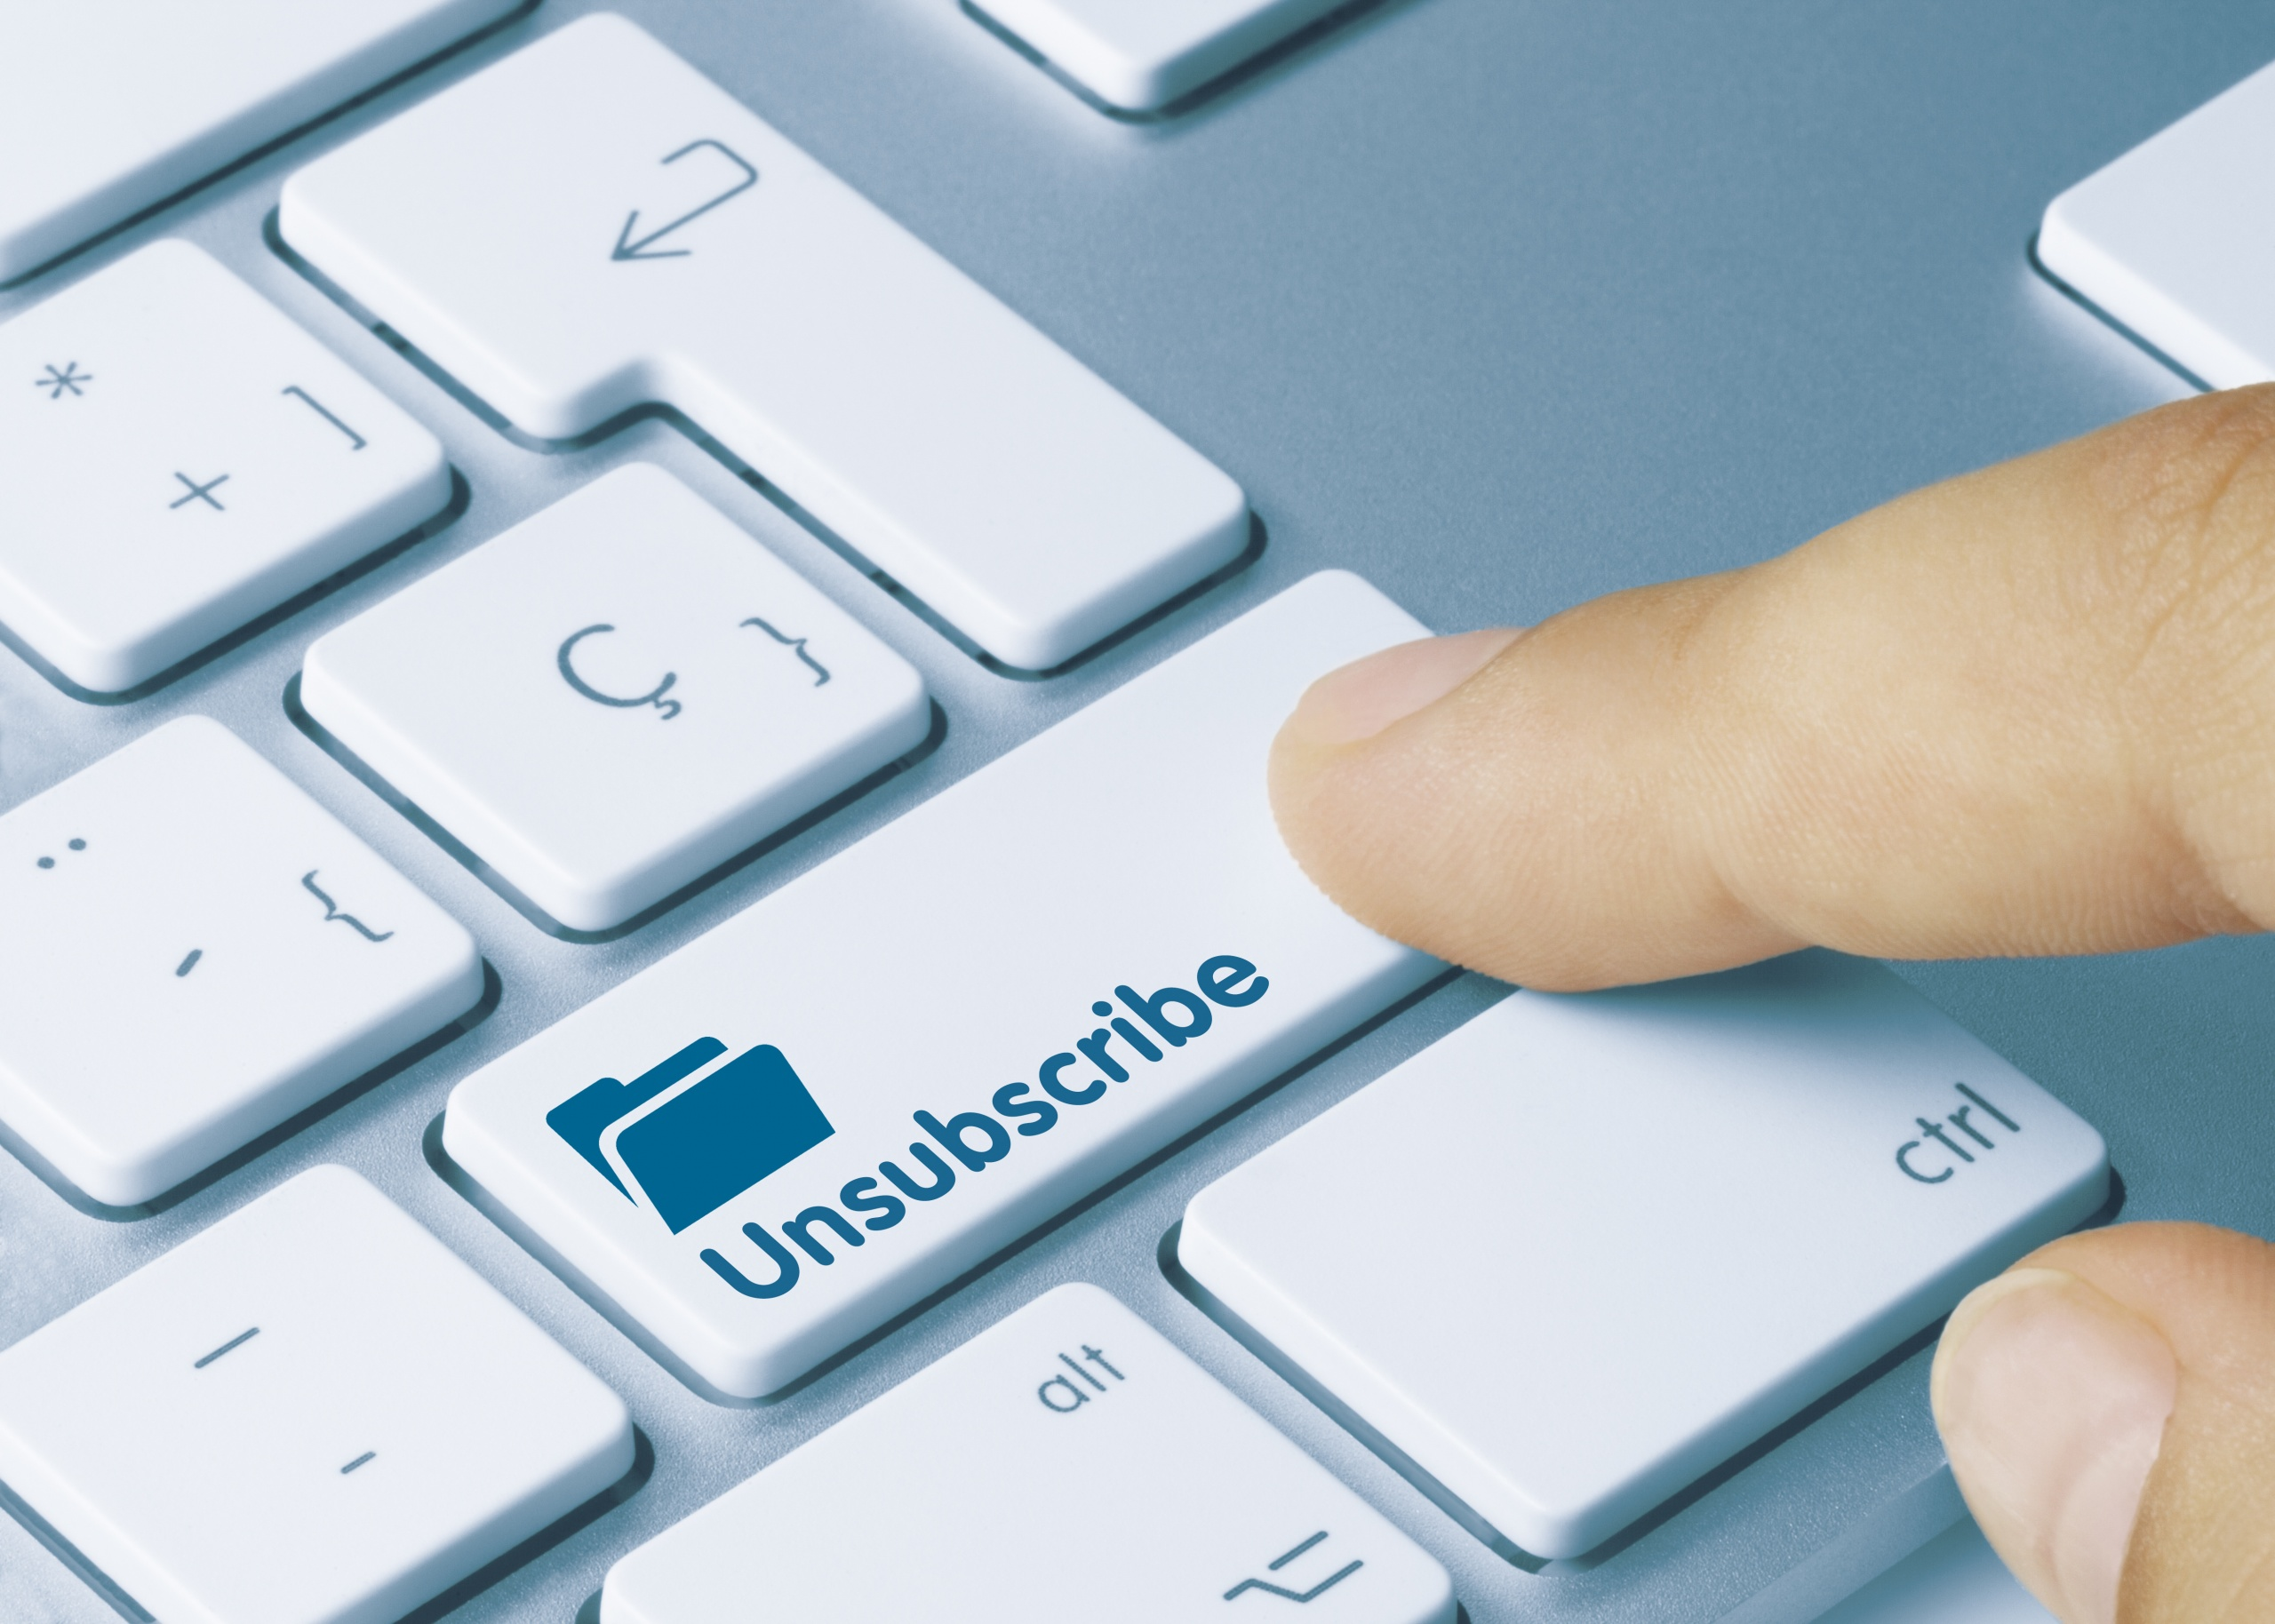 Unsubscribes